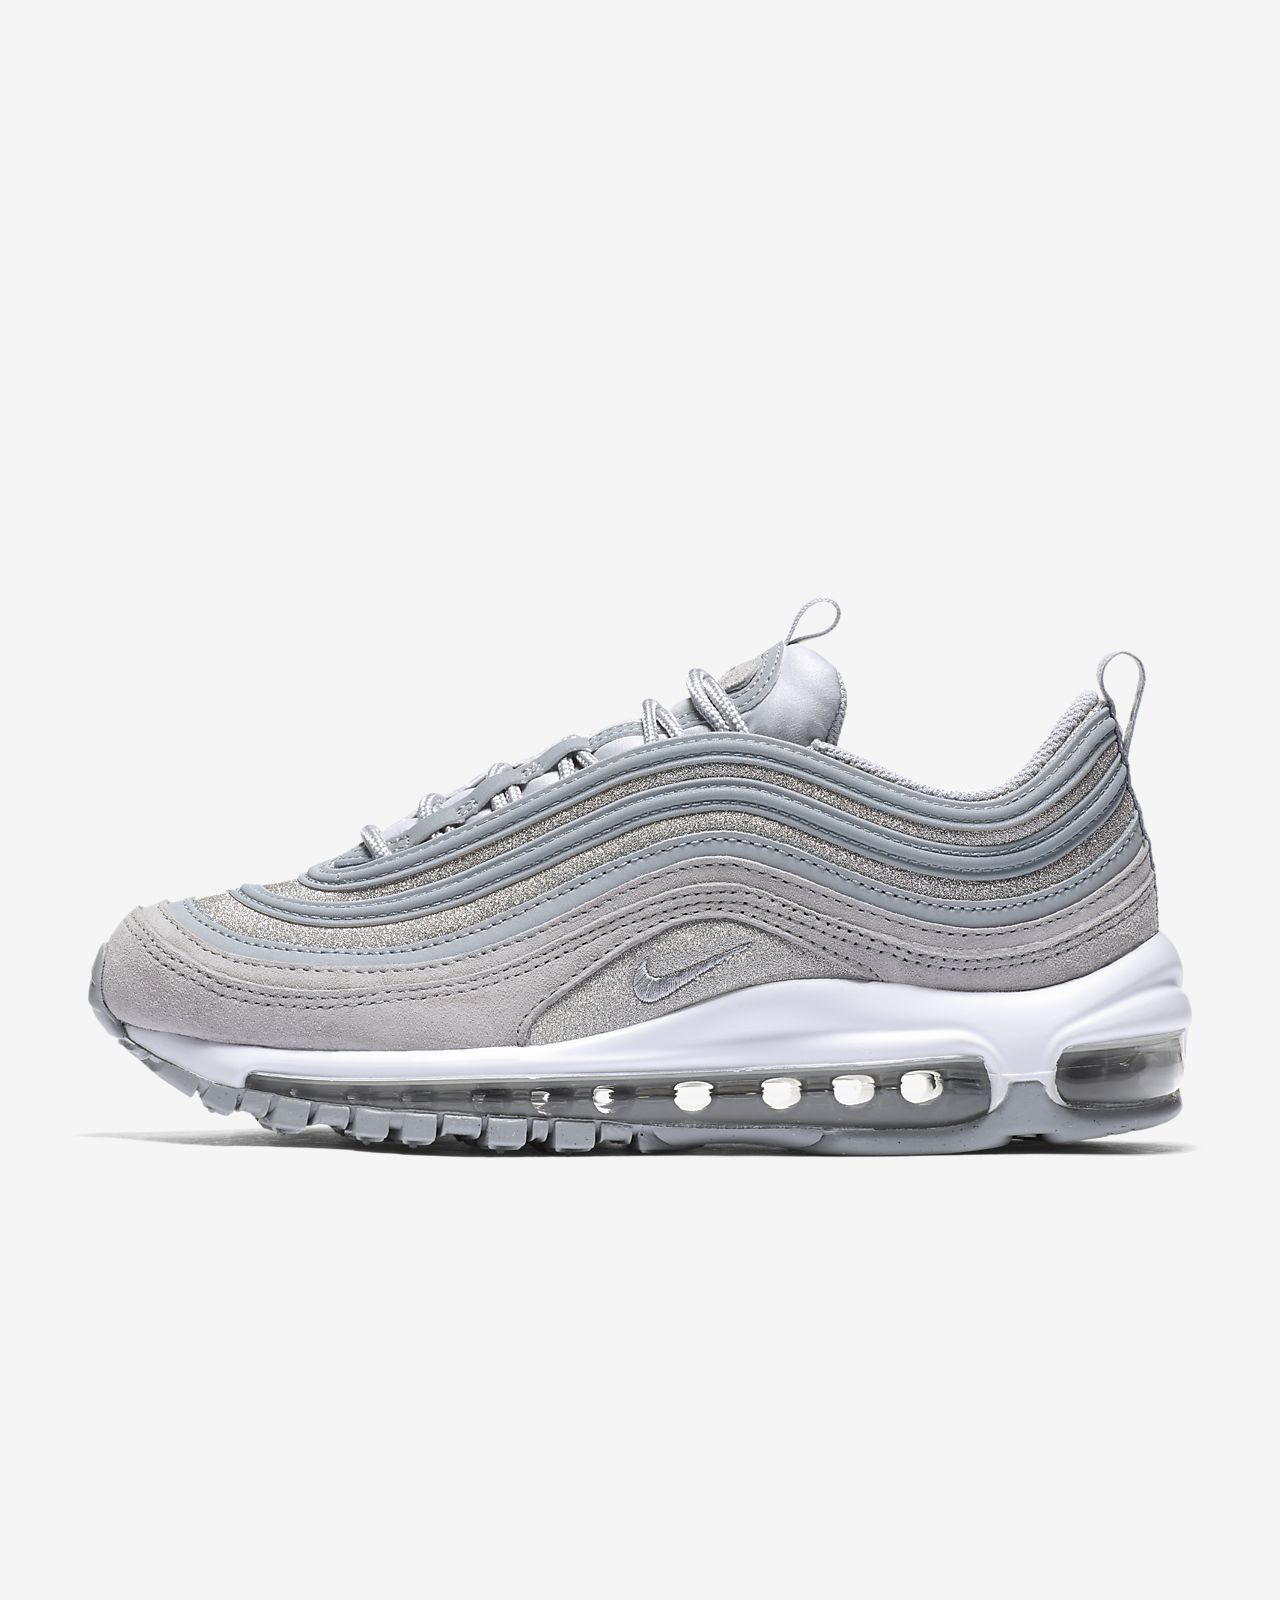 9a14da4956 Nike Air Max 97 Glitter Women's Shoe | Shoes | Nike air max, Shoes ...